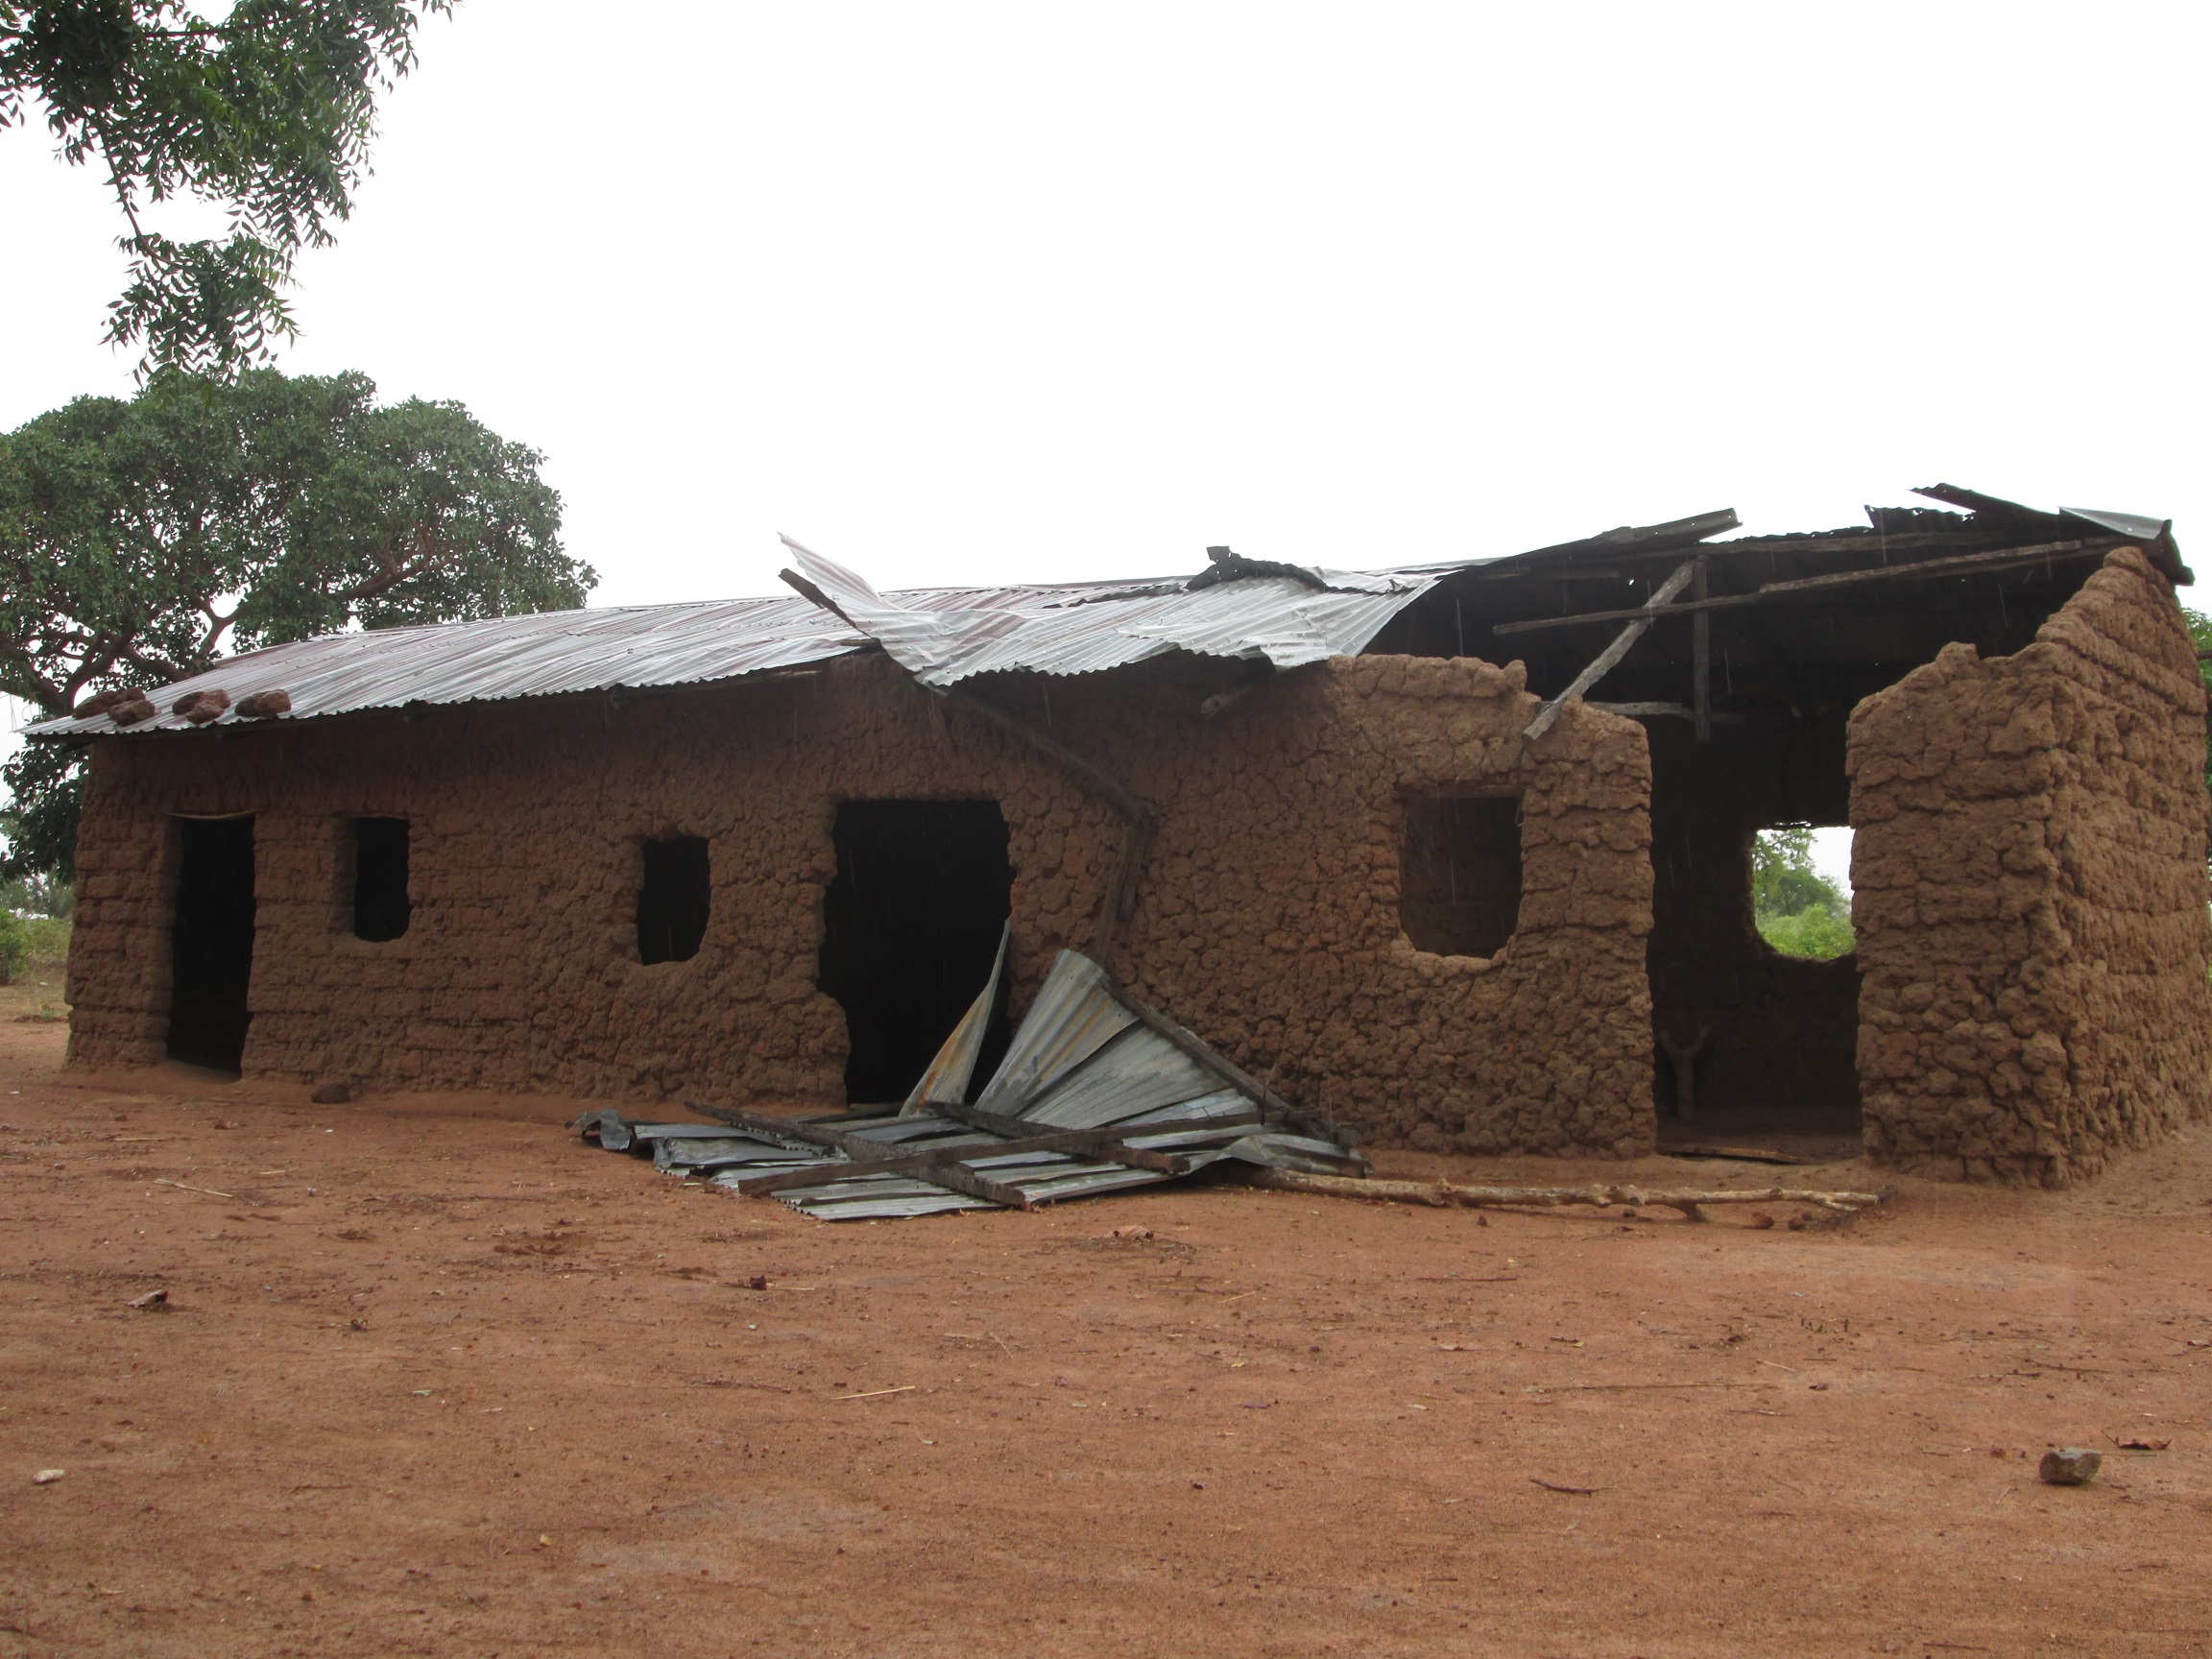 The school at Jajel ... A school or an abandoned hut?